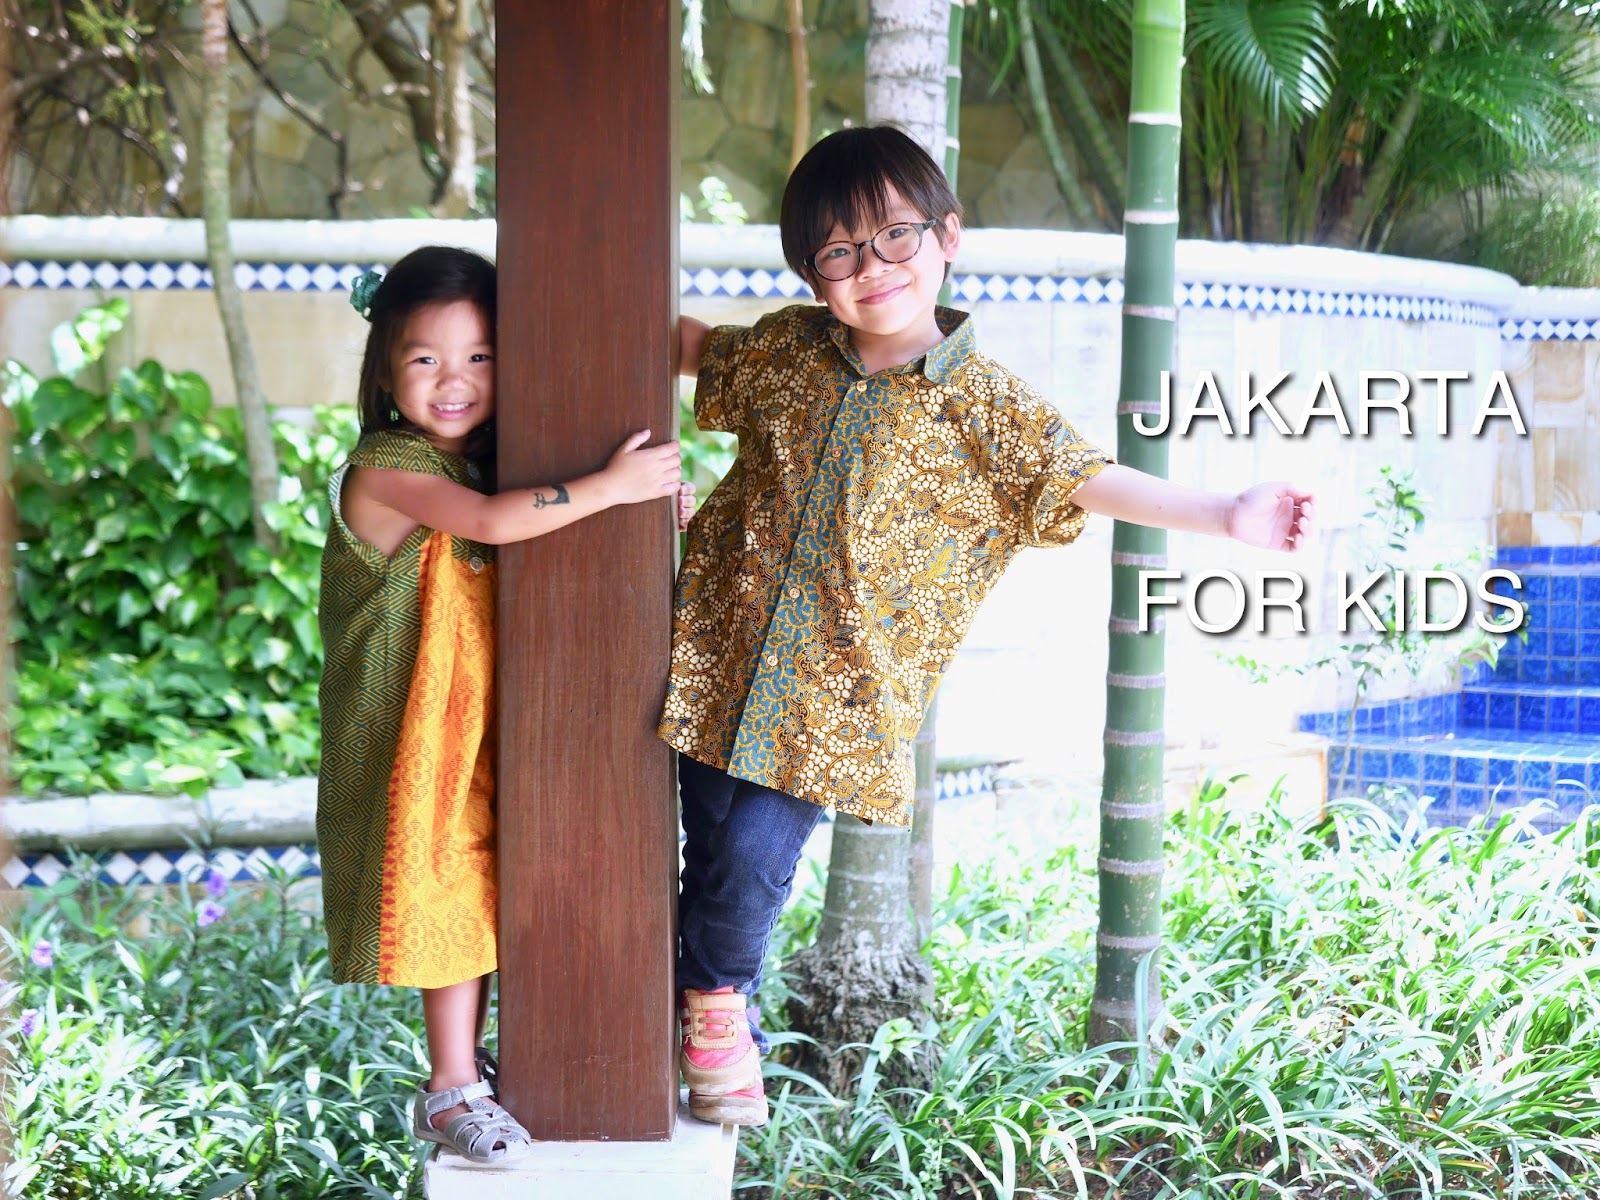 Jakarta For Kids A Million Little Echoes Et Ticket Aquarium Reguler Weekday I Retorted But Google Maps Suggest The Places Put On Itinerary To Be Just 35 Minutes Drive Away From Hotel